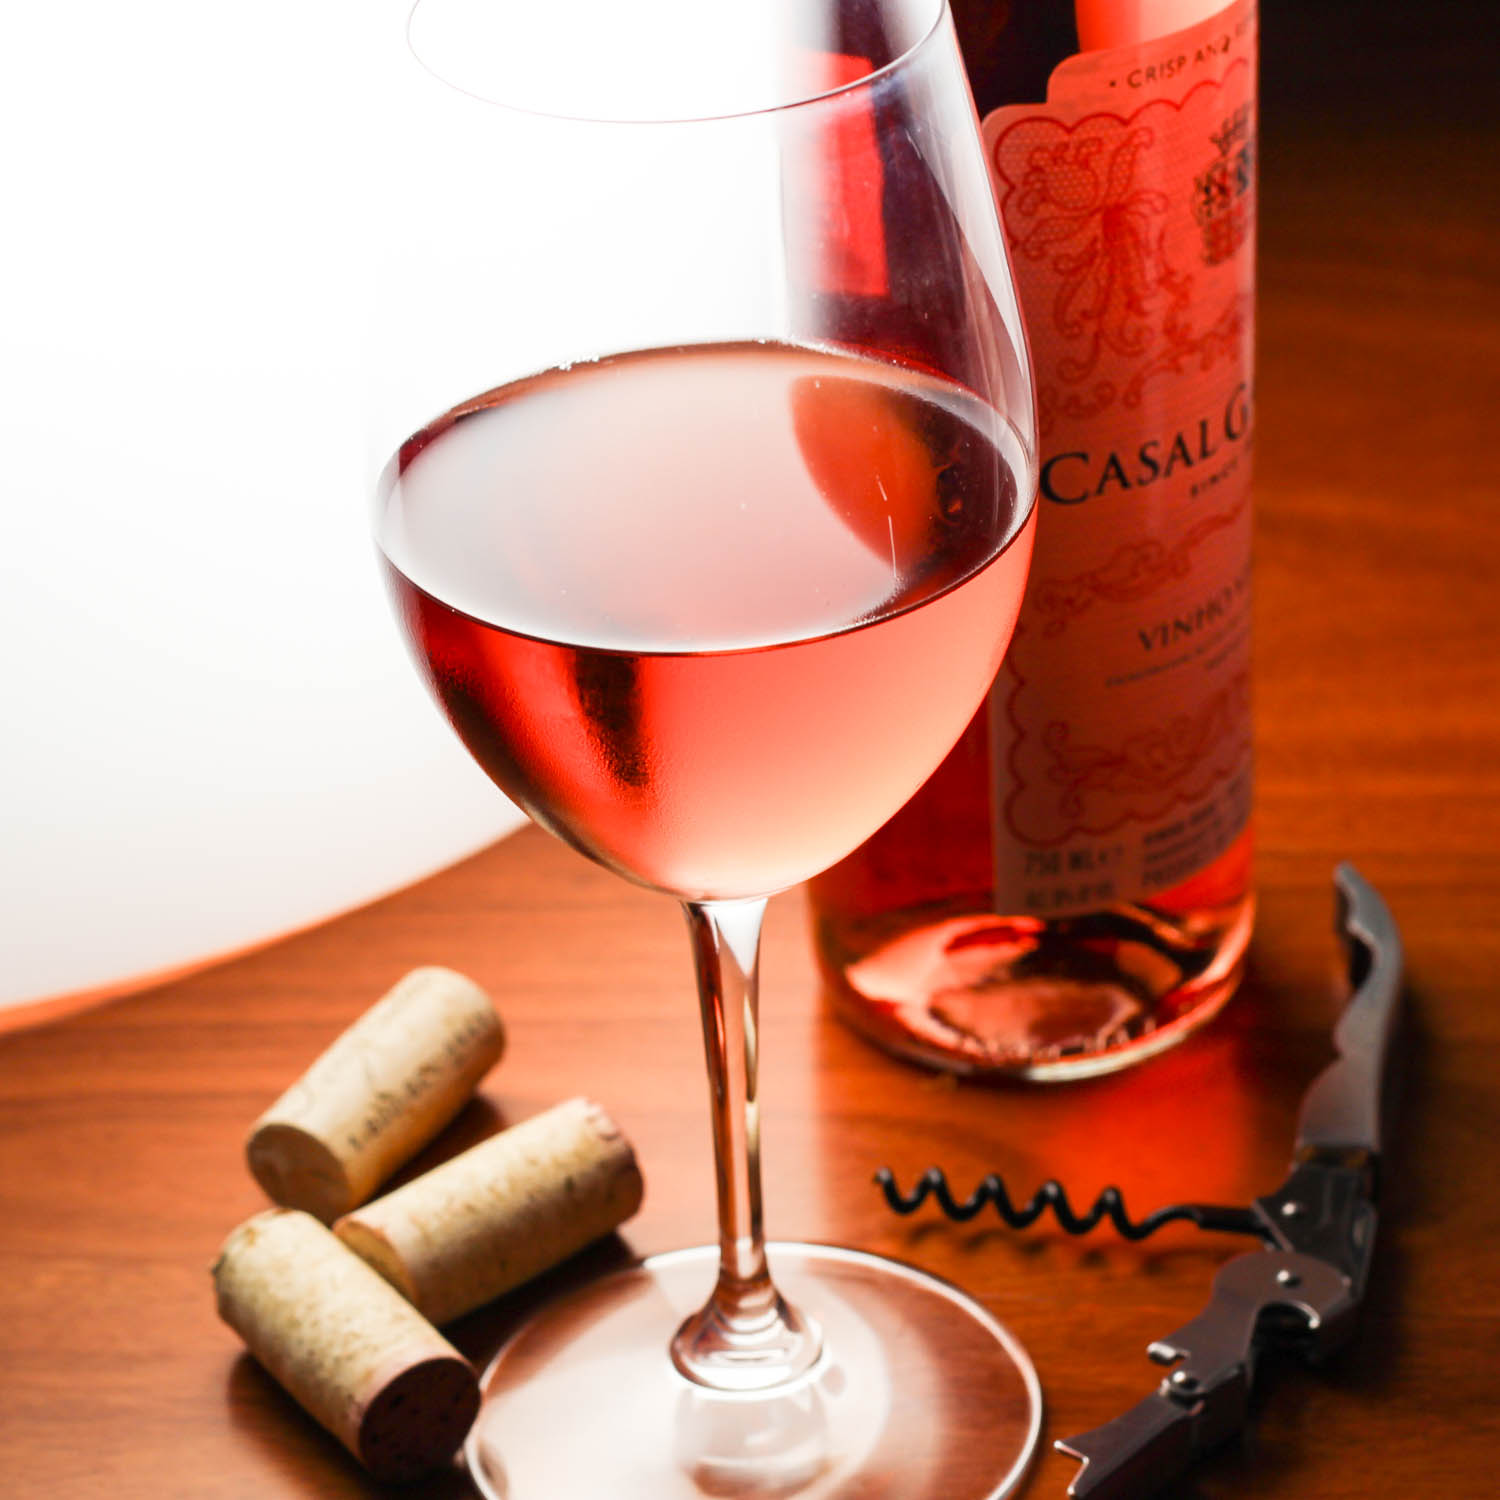 5 Great Rosé Wines Under $10 platingsandpairings.com